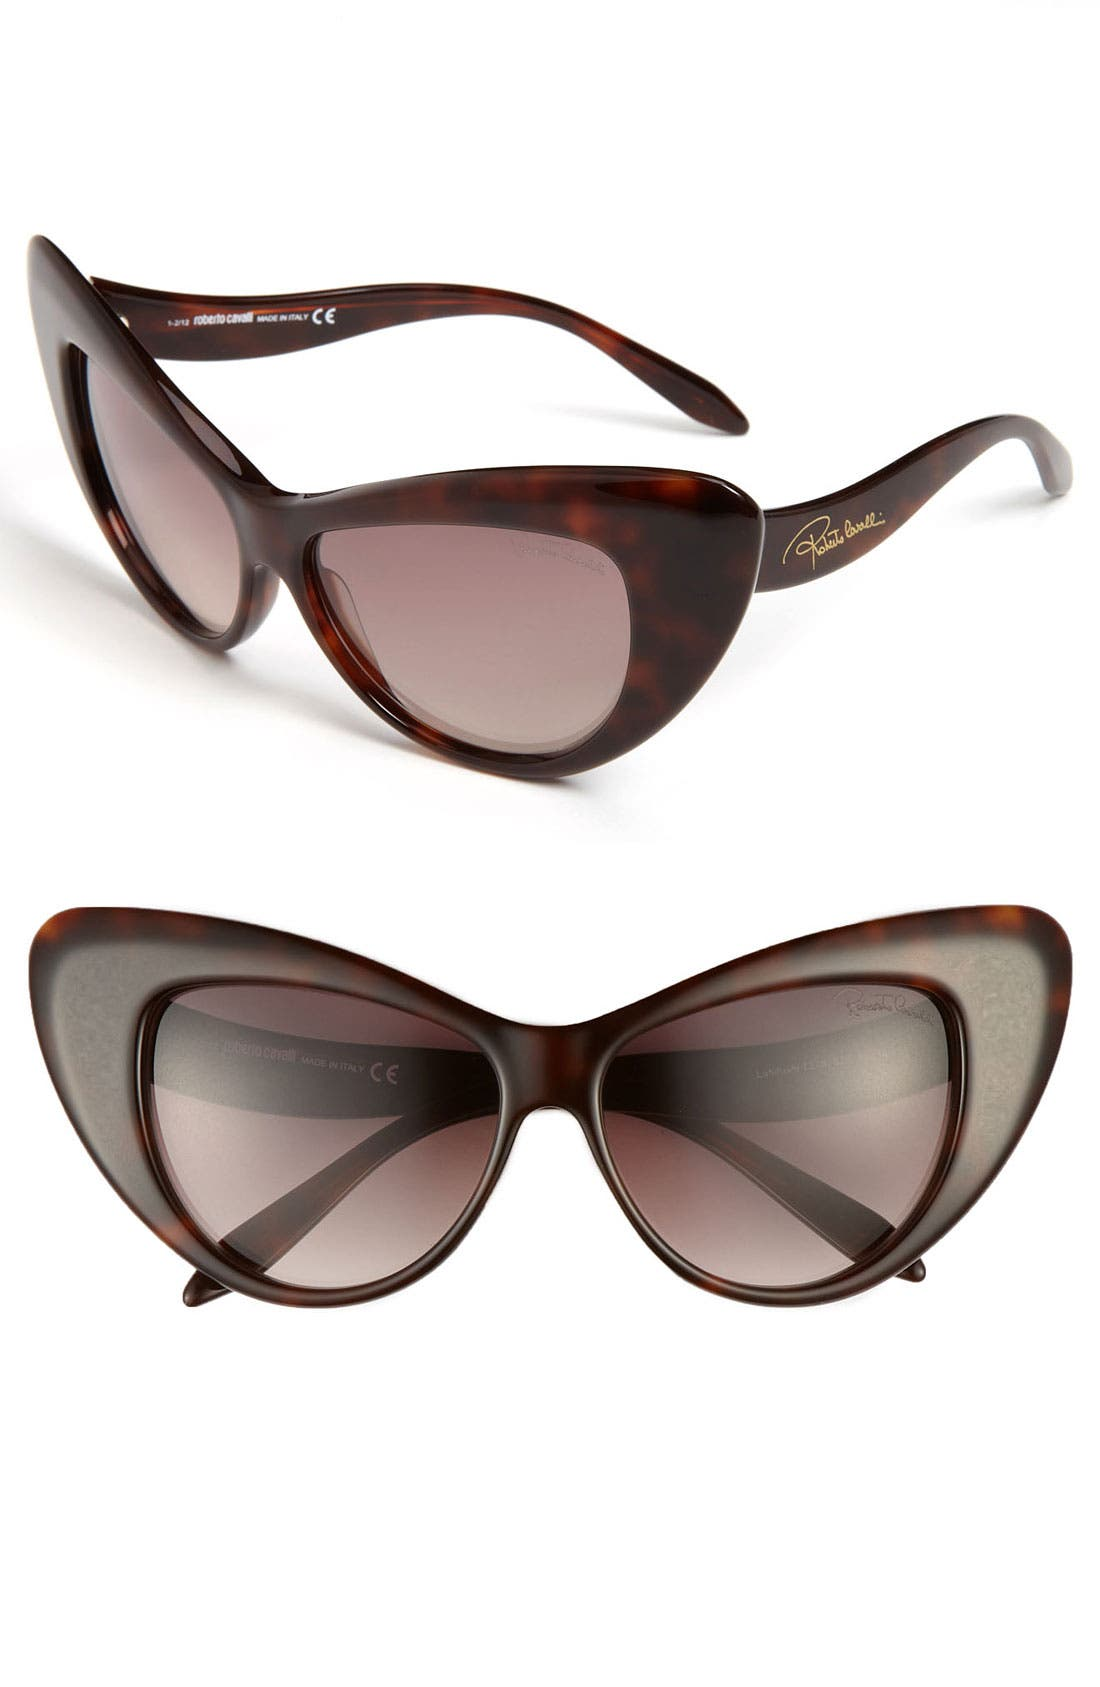 Alternate Image 1 Selected - Roberto Cavalli 58mm Retro Sunglasses